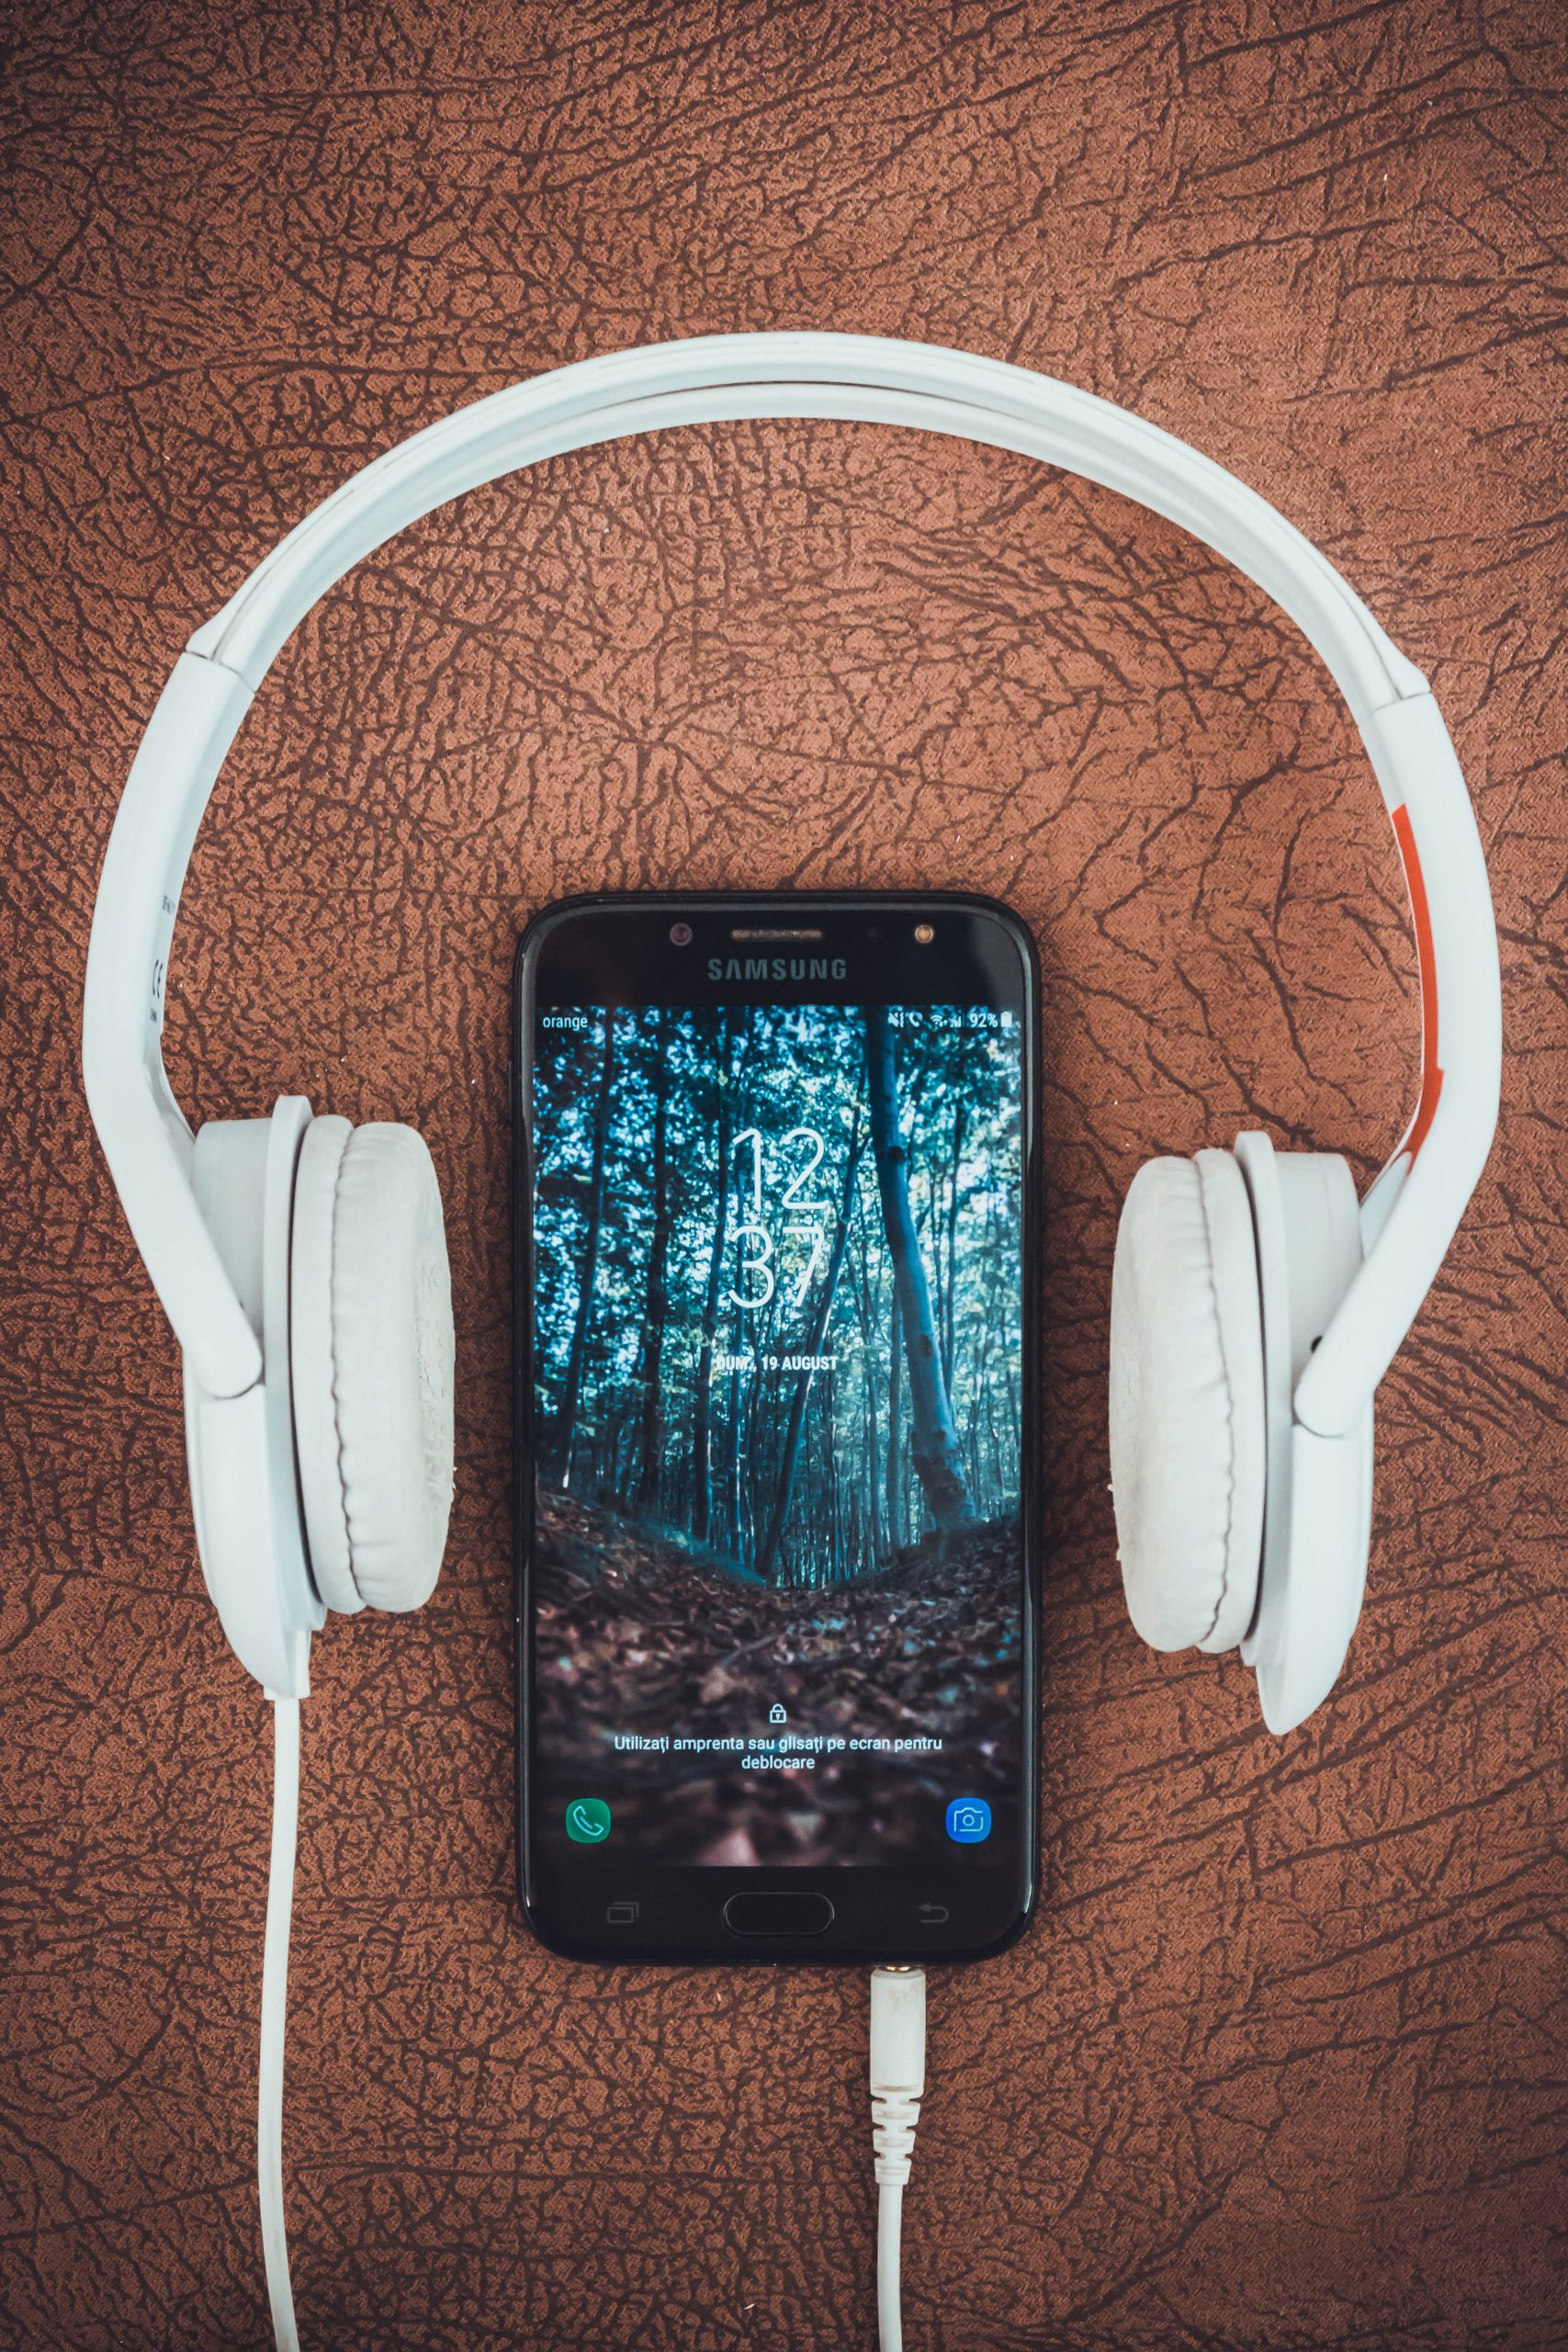 Running with music? Or without?